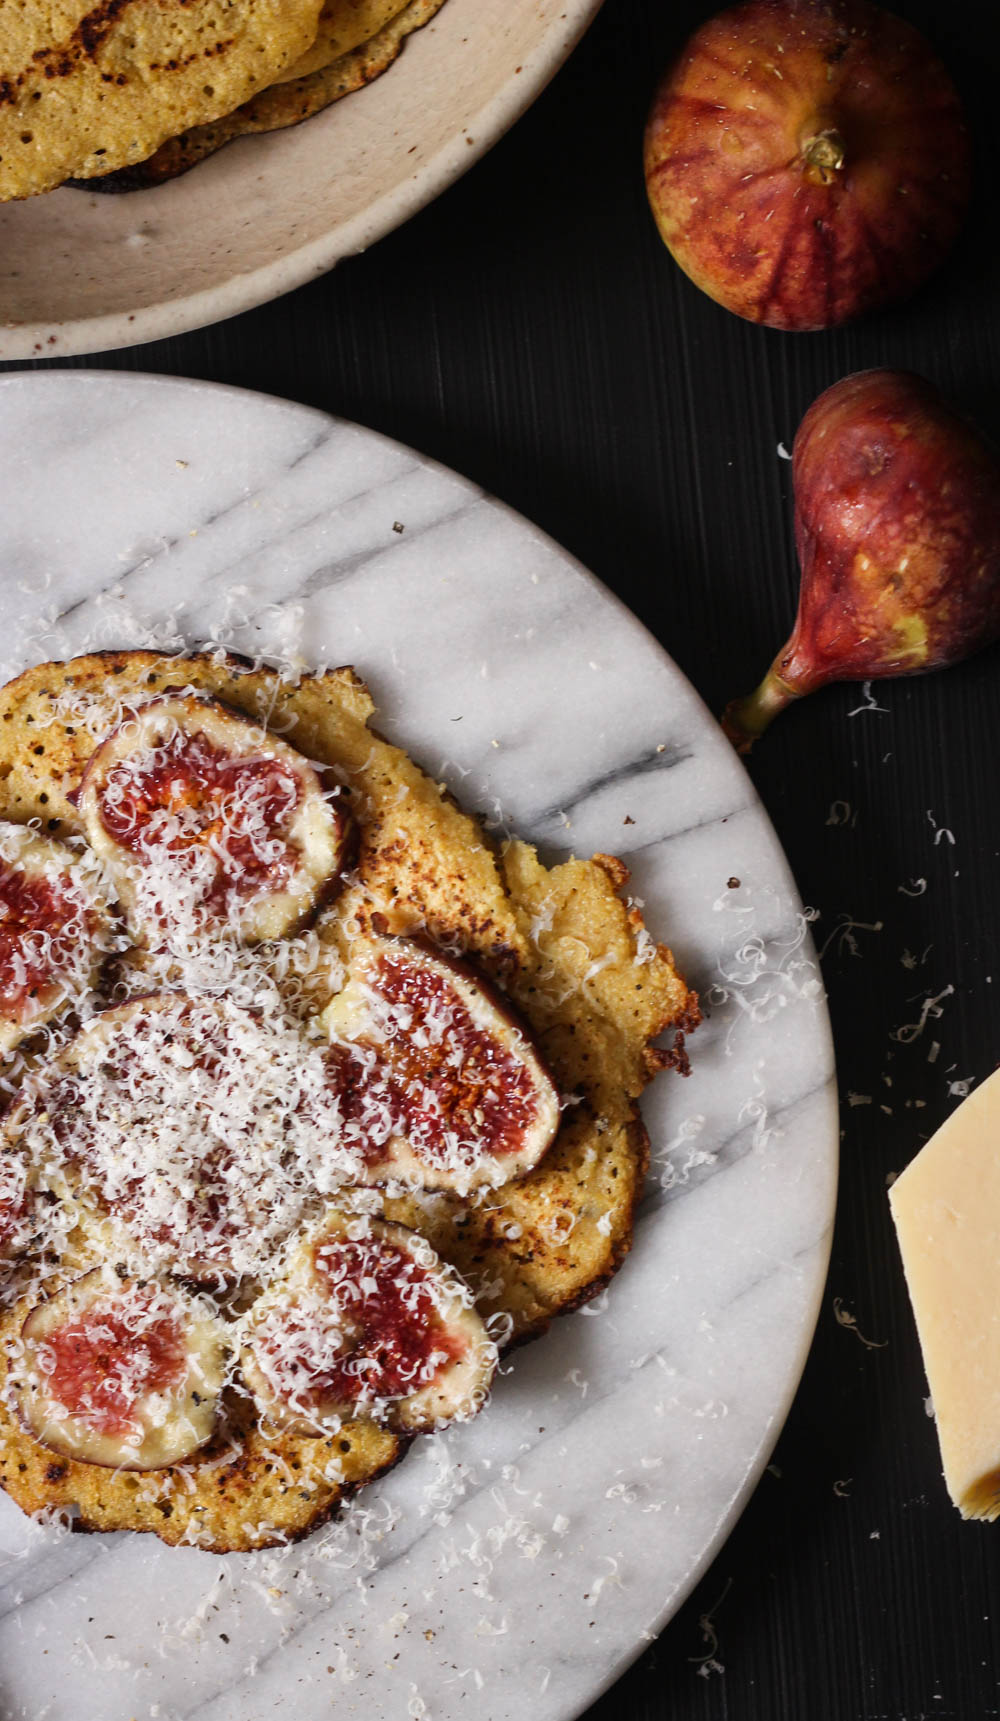 Stove-top socca with fresh figs, Parmesan and cracked pepper || to her core